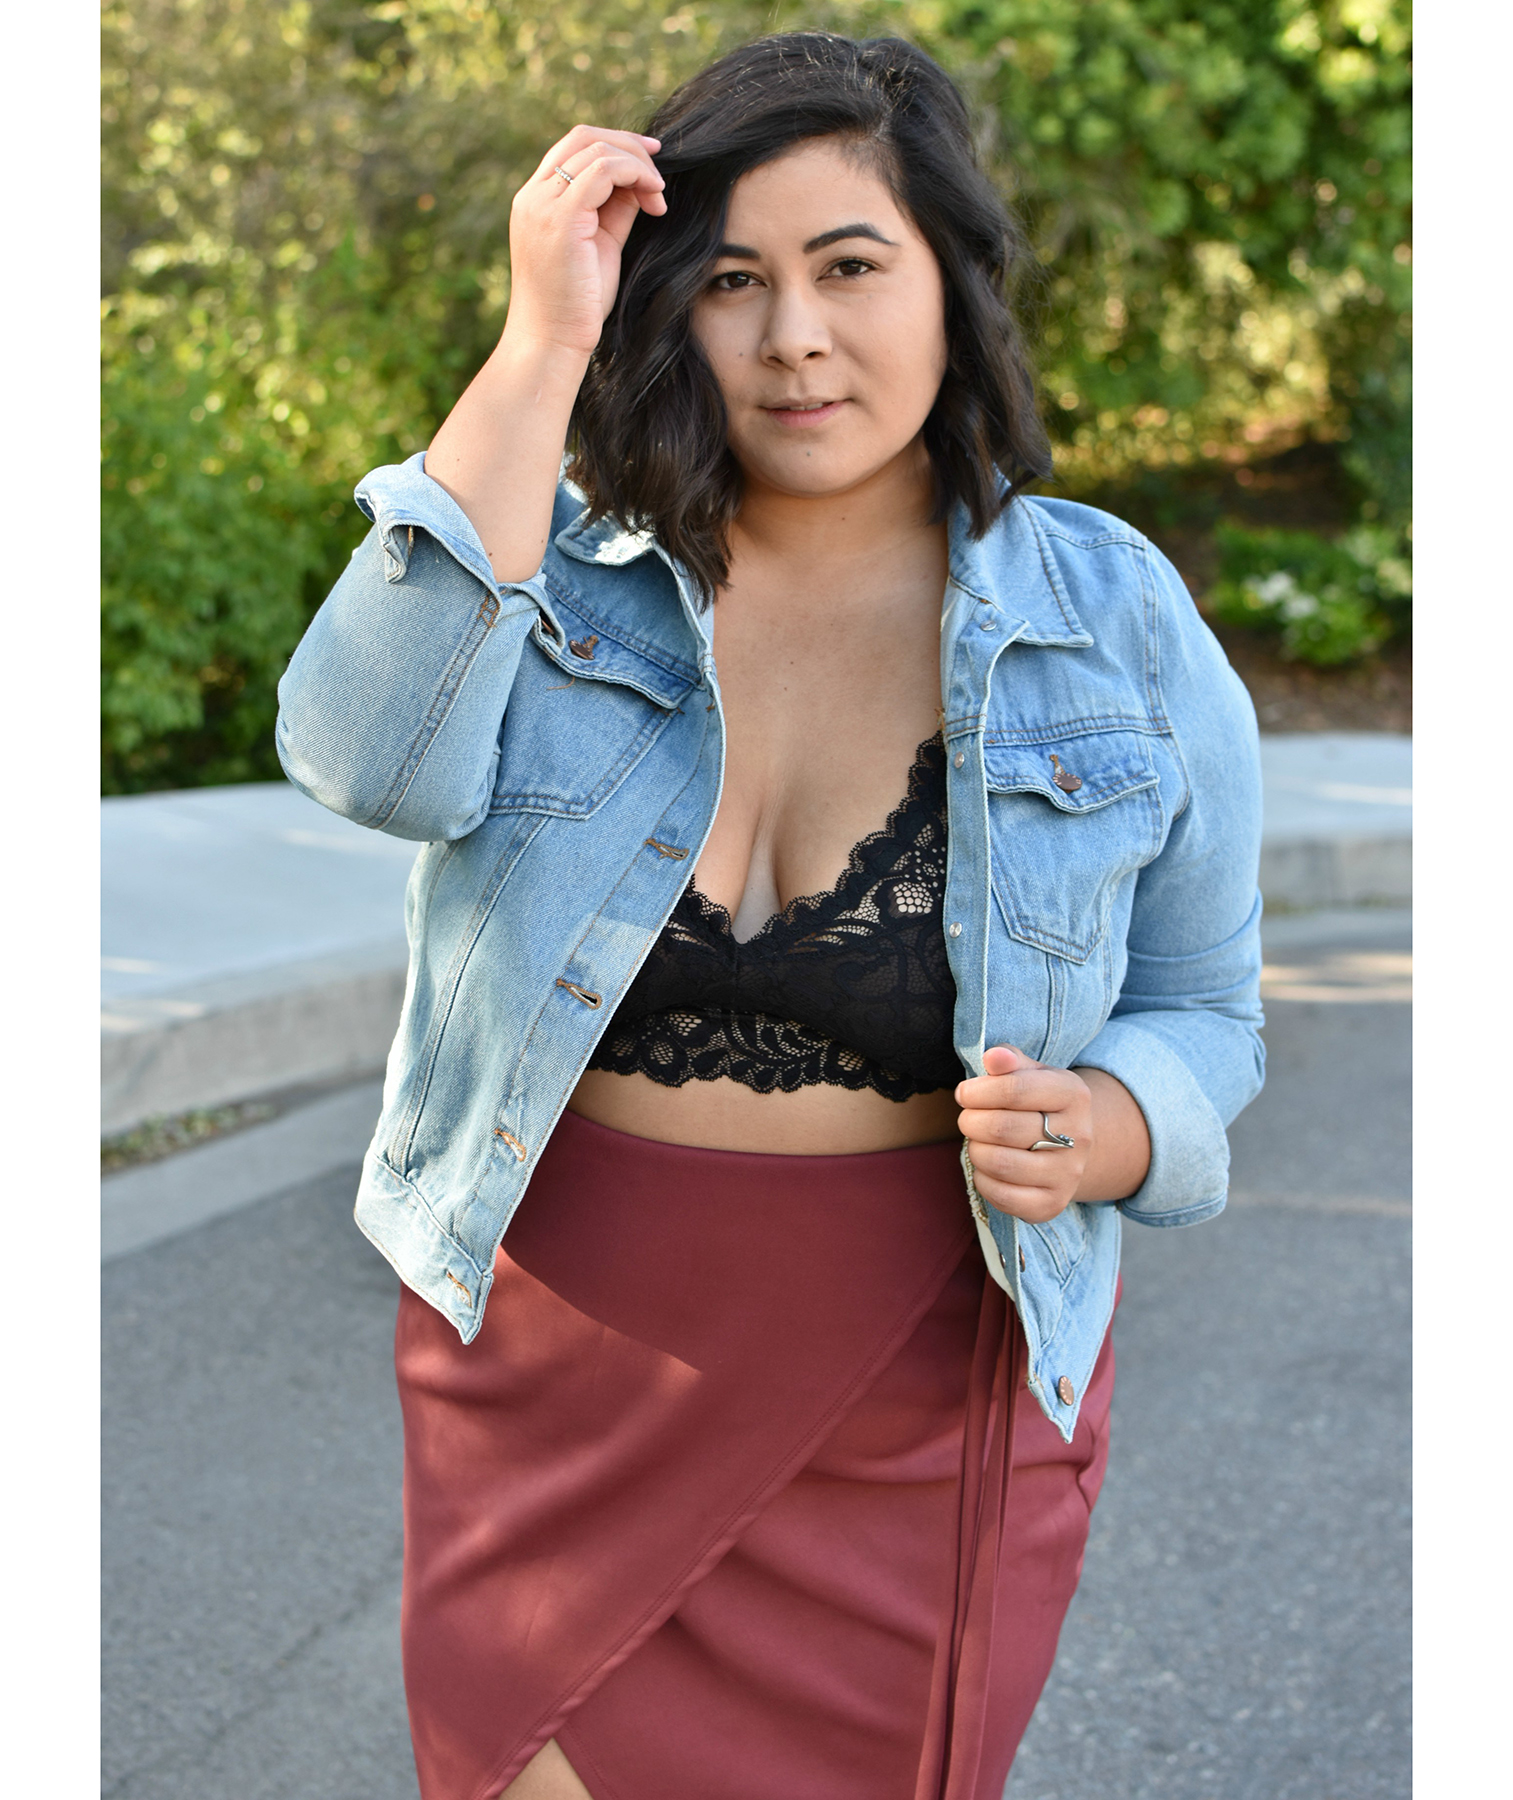 f0deb46047 Tips on How to Wear a Bralette